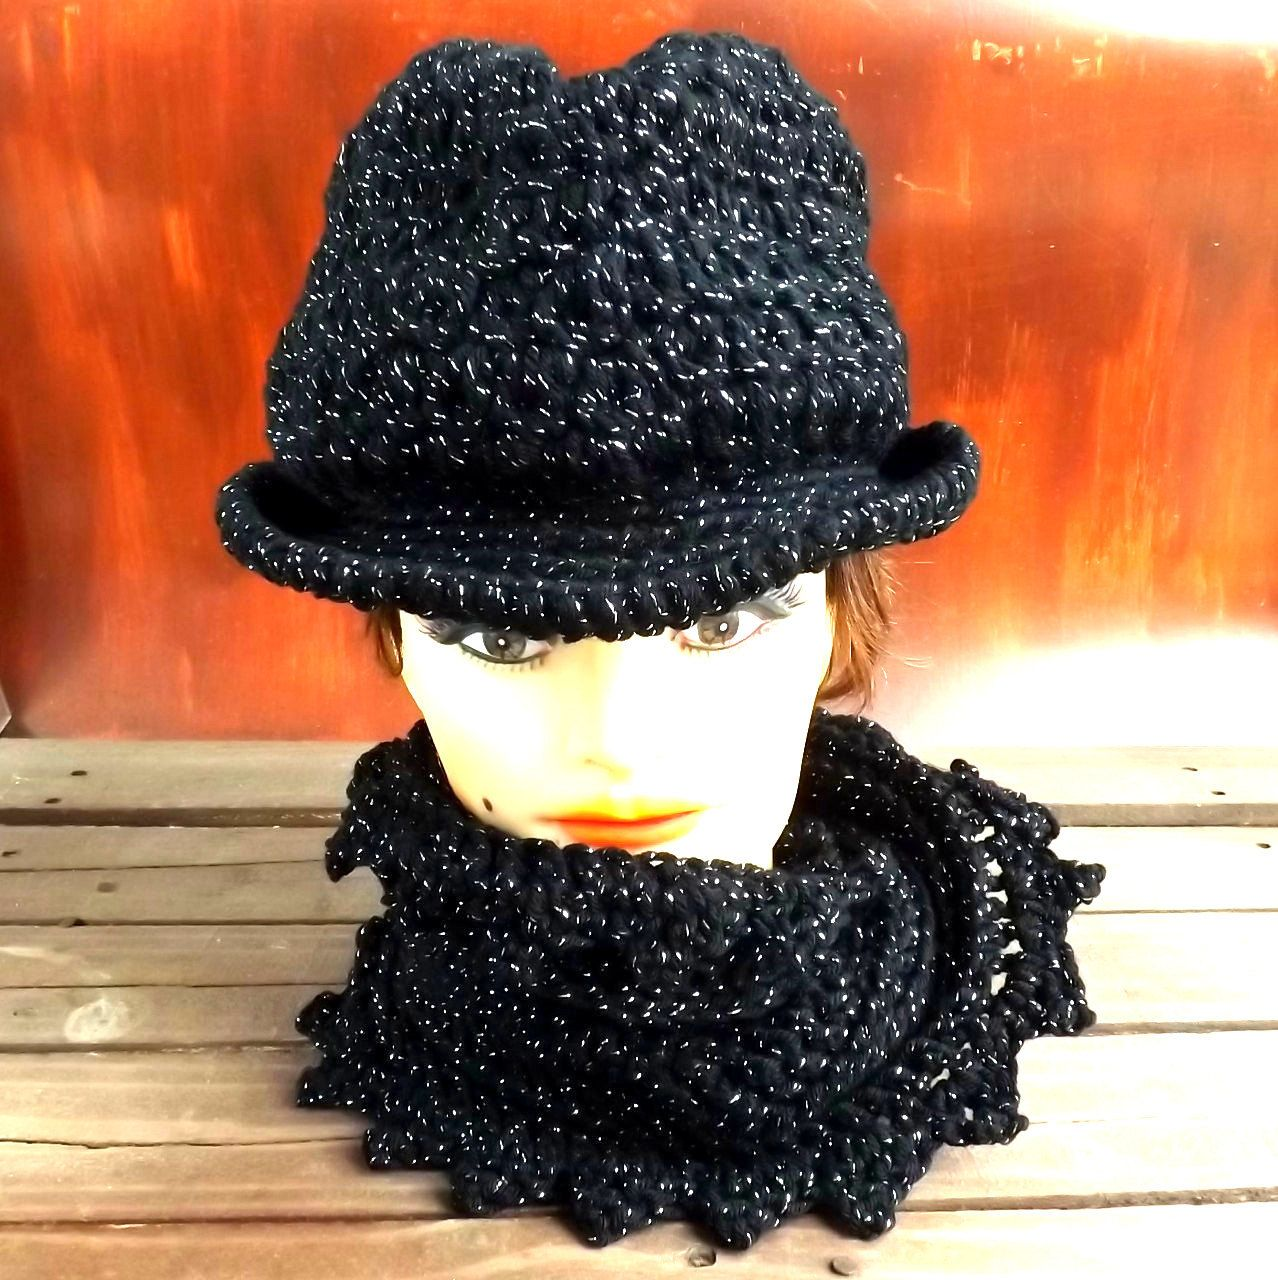 Black Crochet Hat Womens Hat ANDY Fedora Hat Infinity Scarf Black Hat Sparkle Black Crochet Scarf Crochet Winter Hat Winter Scarf 75.00 USD by #strawberrycouture on #Etsy - MUST SEE!